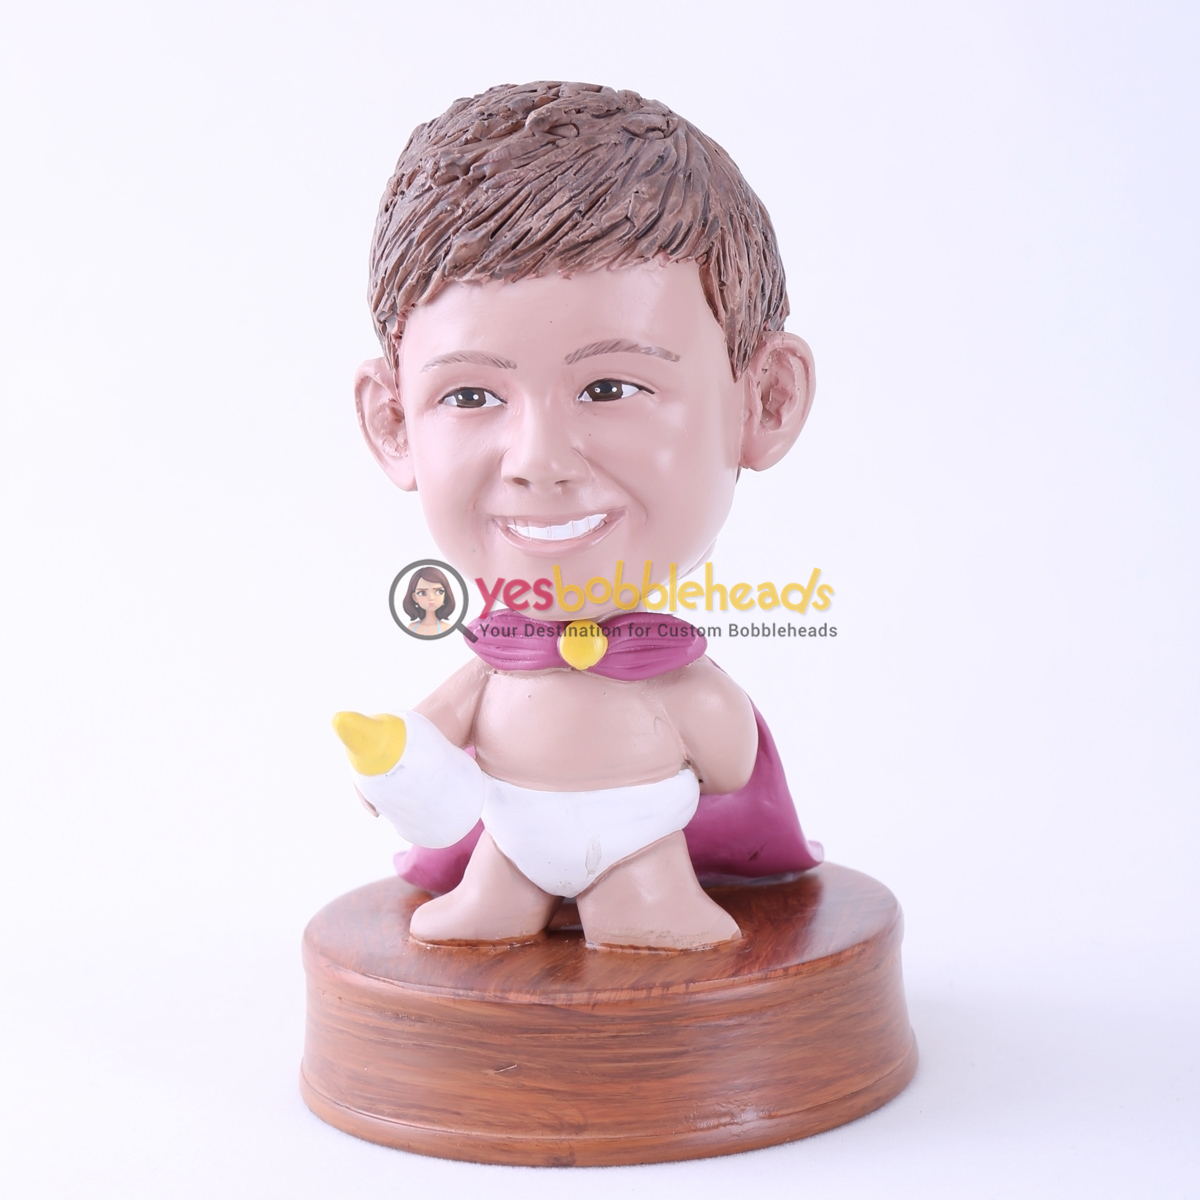 Picture of Custom Bobblehead Doll: Superbaby